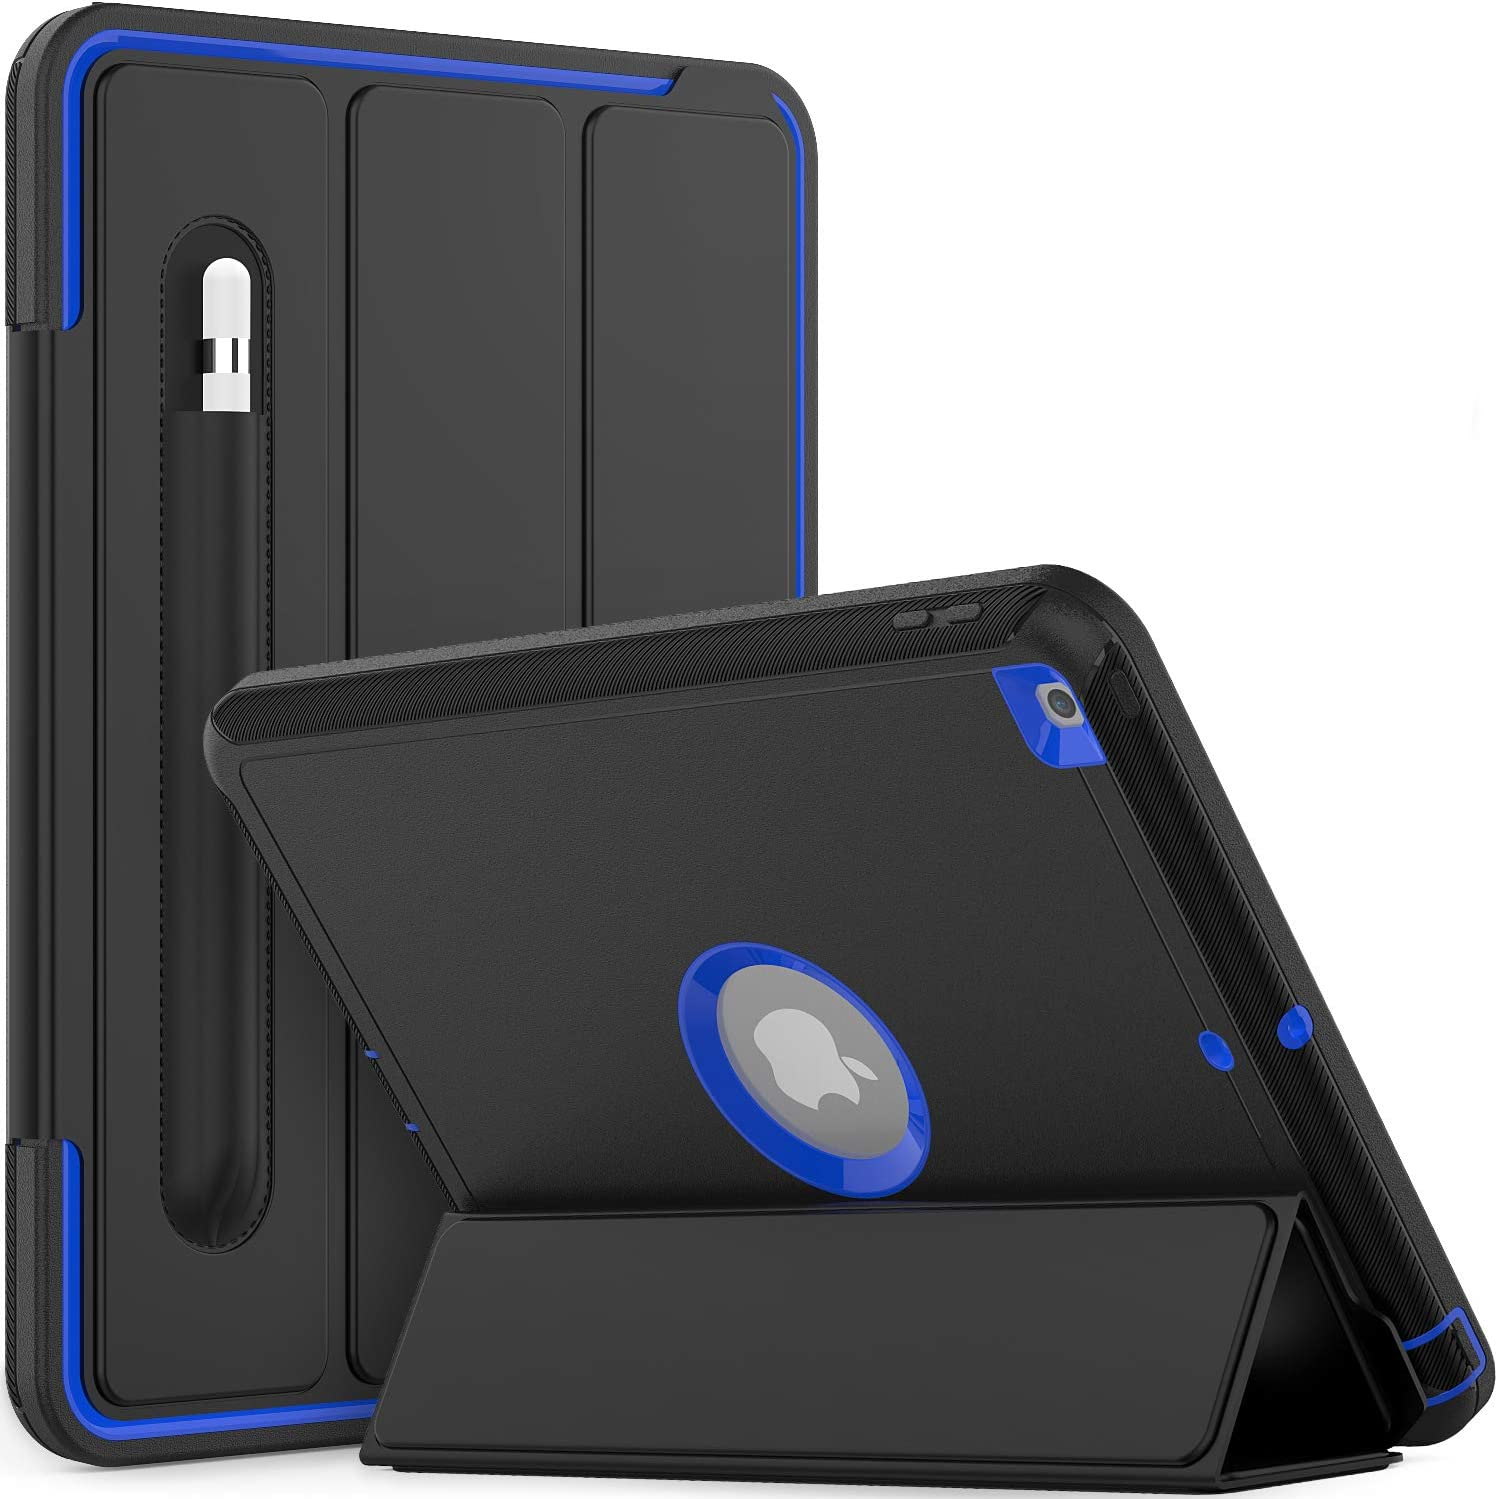 Timecity iPad 8th/ 7th Generation Case, iPad 10.2 Smart Cover with Stand Pencil Holder, Auto Wake/Sleep Smart Case for iPad 8th/ 7th Gen, Durable Cover for iPad 10.2 Inch 2020/2019, Black/Dark Blue